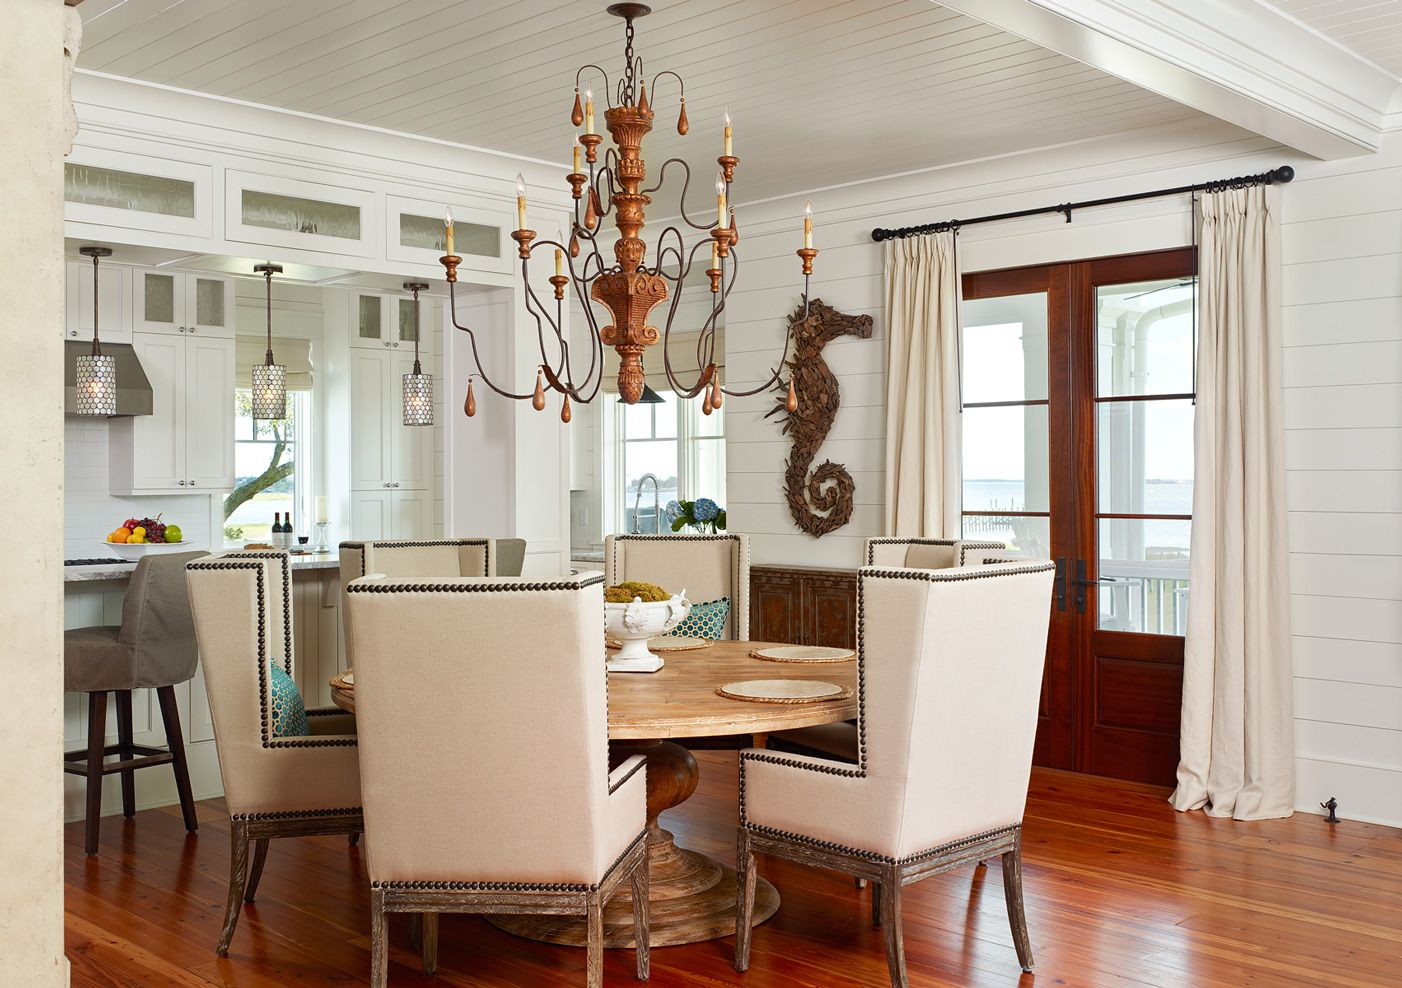 Driftwood Seahorse In Dining Room By Home Builder Charleston SC STRUCTURES For Another